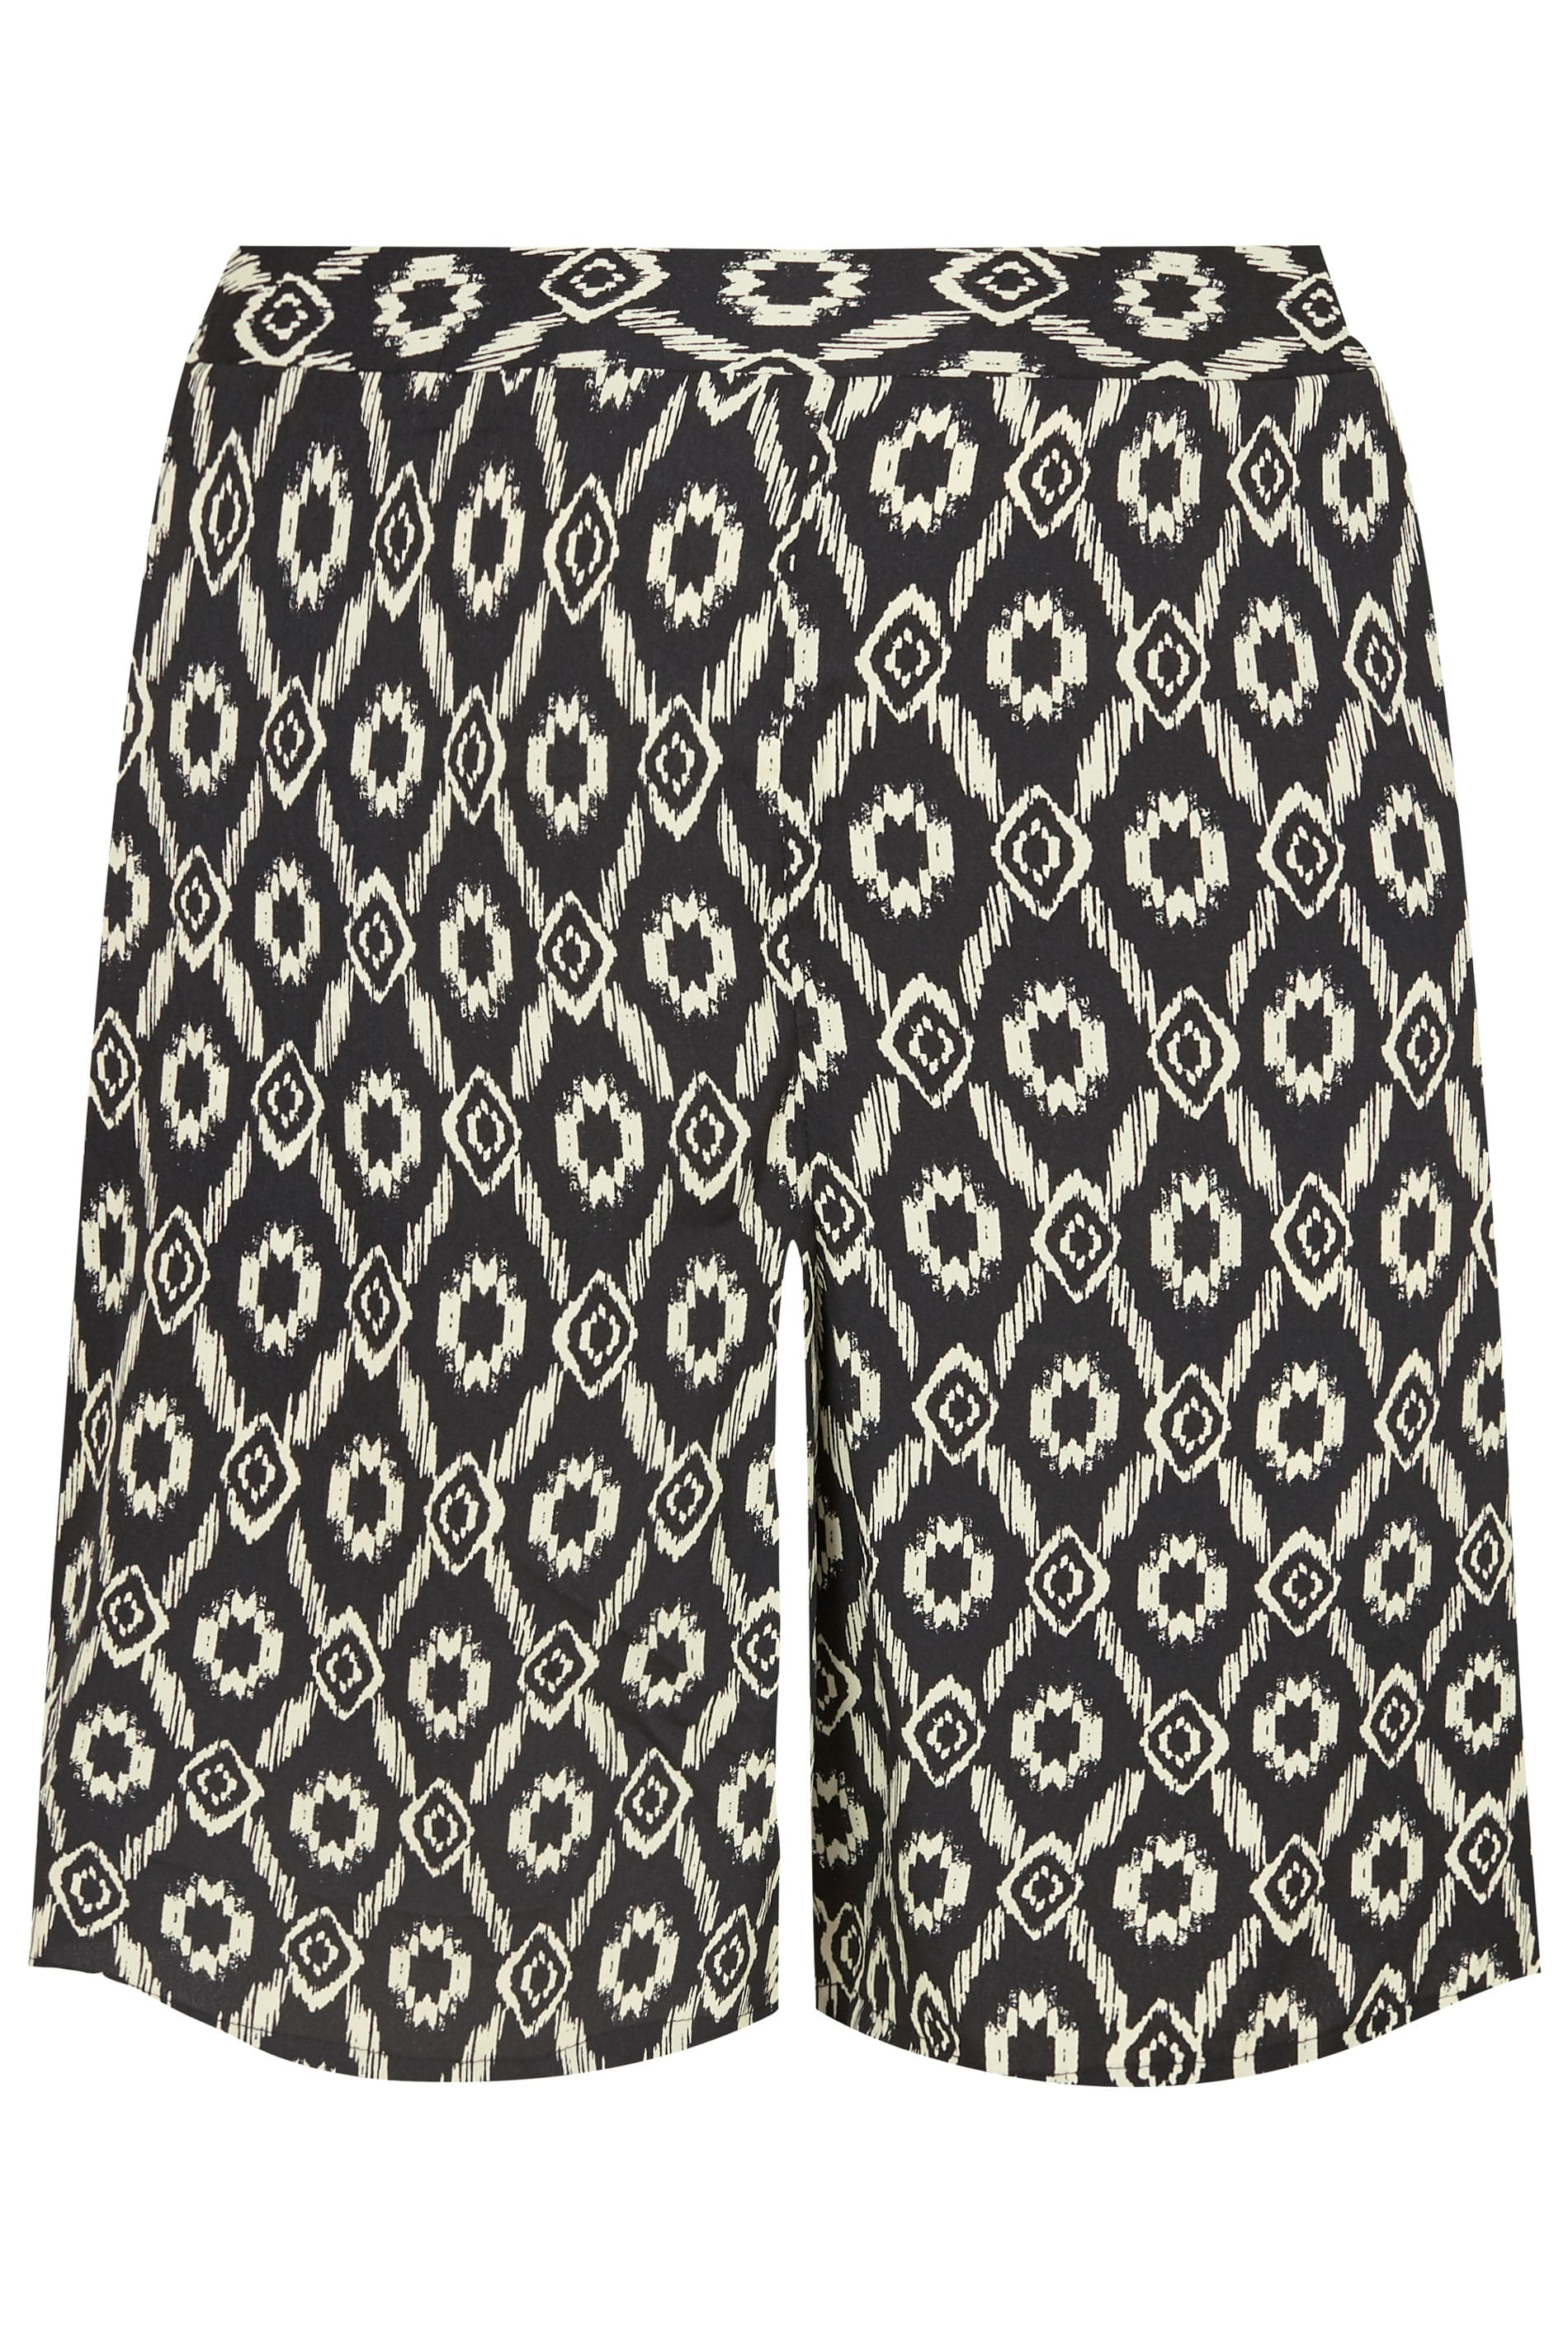 how to head a letter chiffon shorts mit ethnoprint in schwarz amp beige in 40372